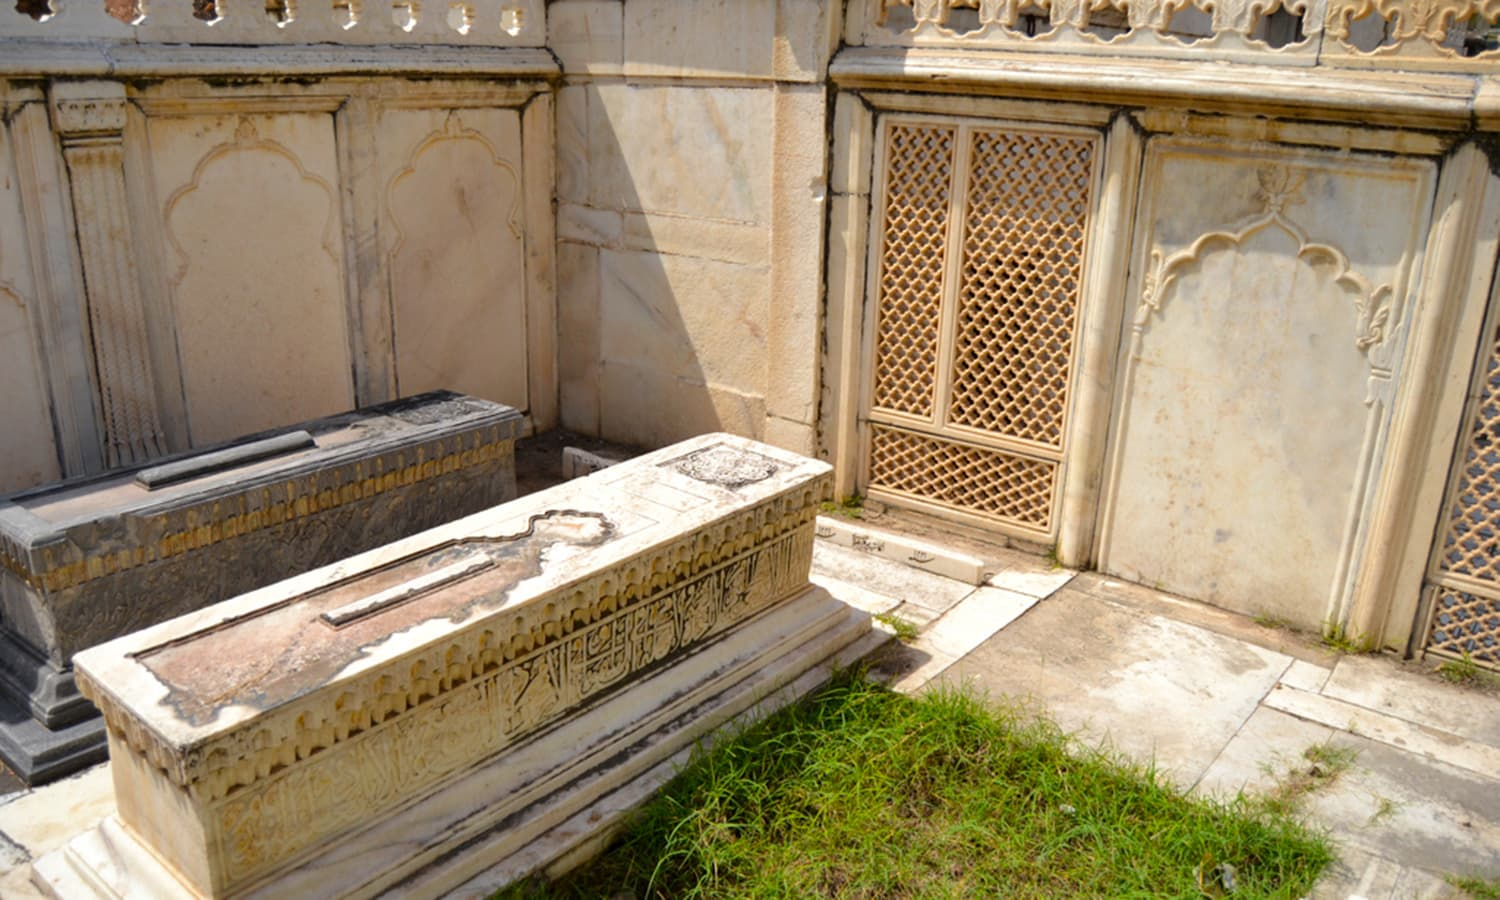 Right to left - Bahadur Shah I, Shah Alam II, and Sardgah, where Zafar desired to be buried.